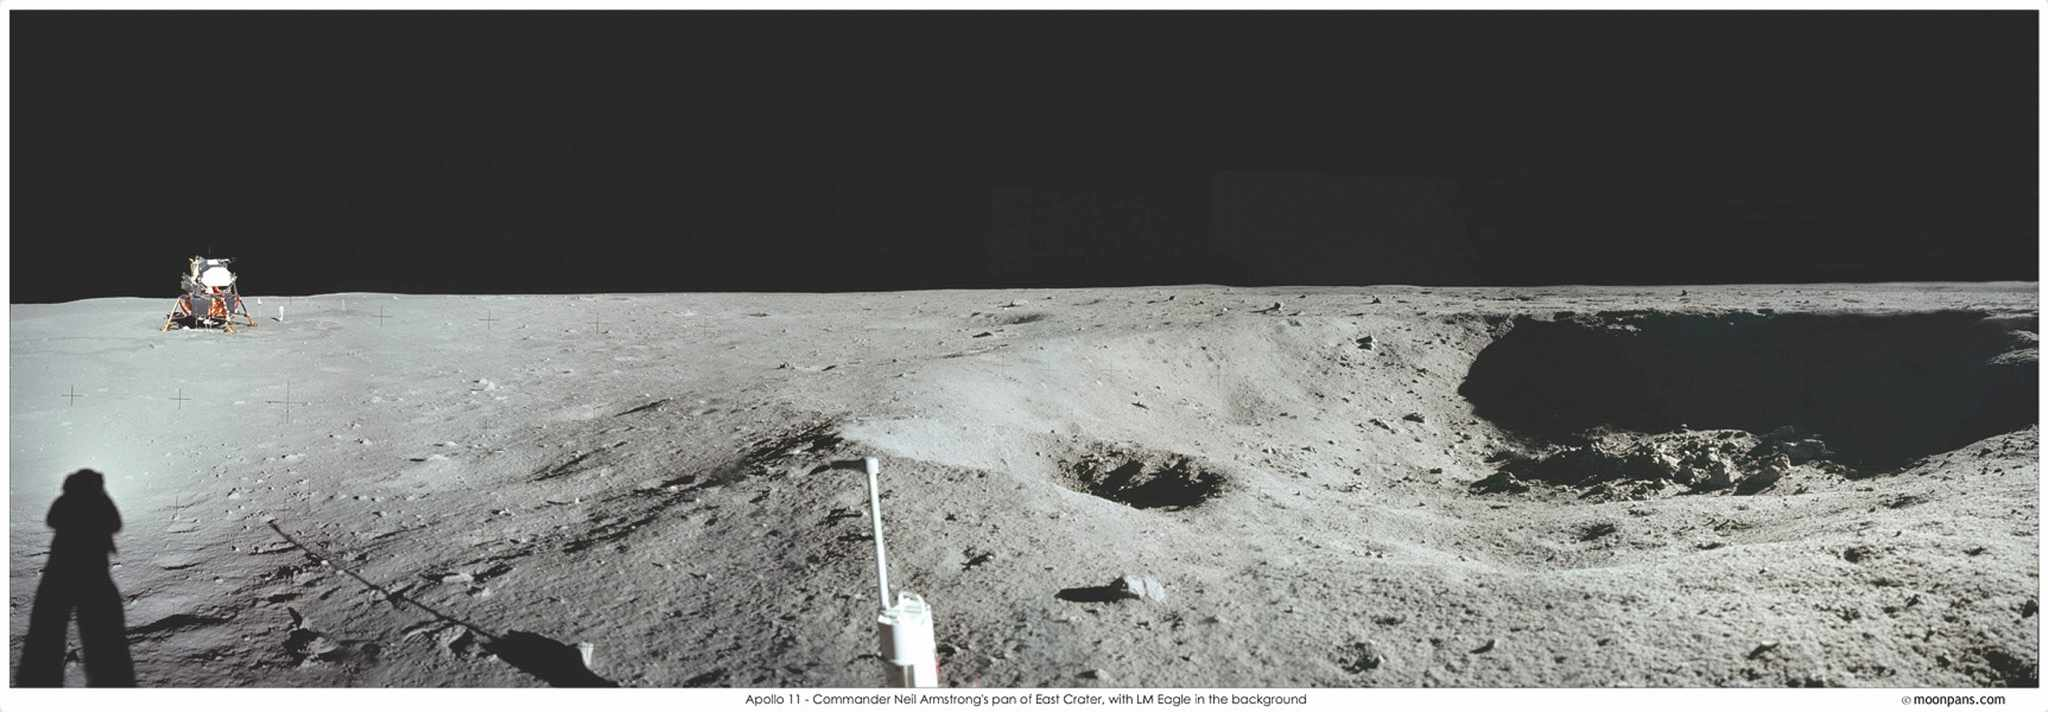 Around 60m east of the lunar module, Armstrong decided he had gone far enough and stopped to take this panoramic shot. It shows the lunar module on the left and East Crater on the right. The crater is approximately 30m wide and 4m deep. © NASA/JPL